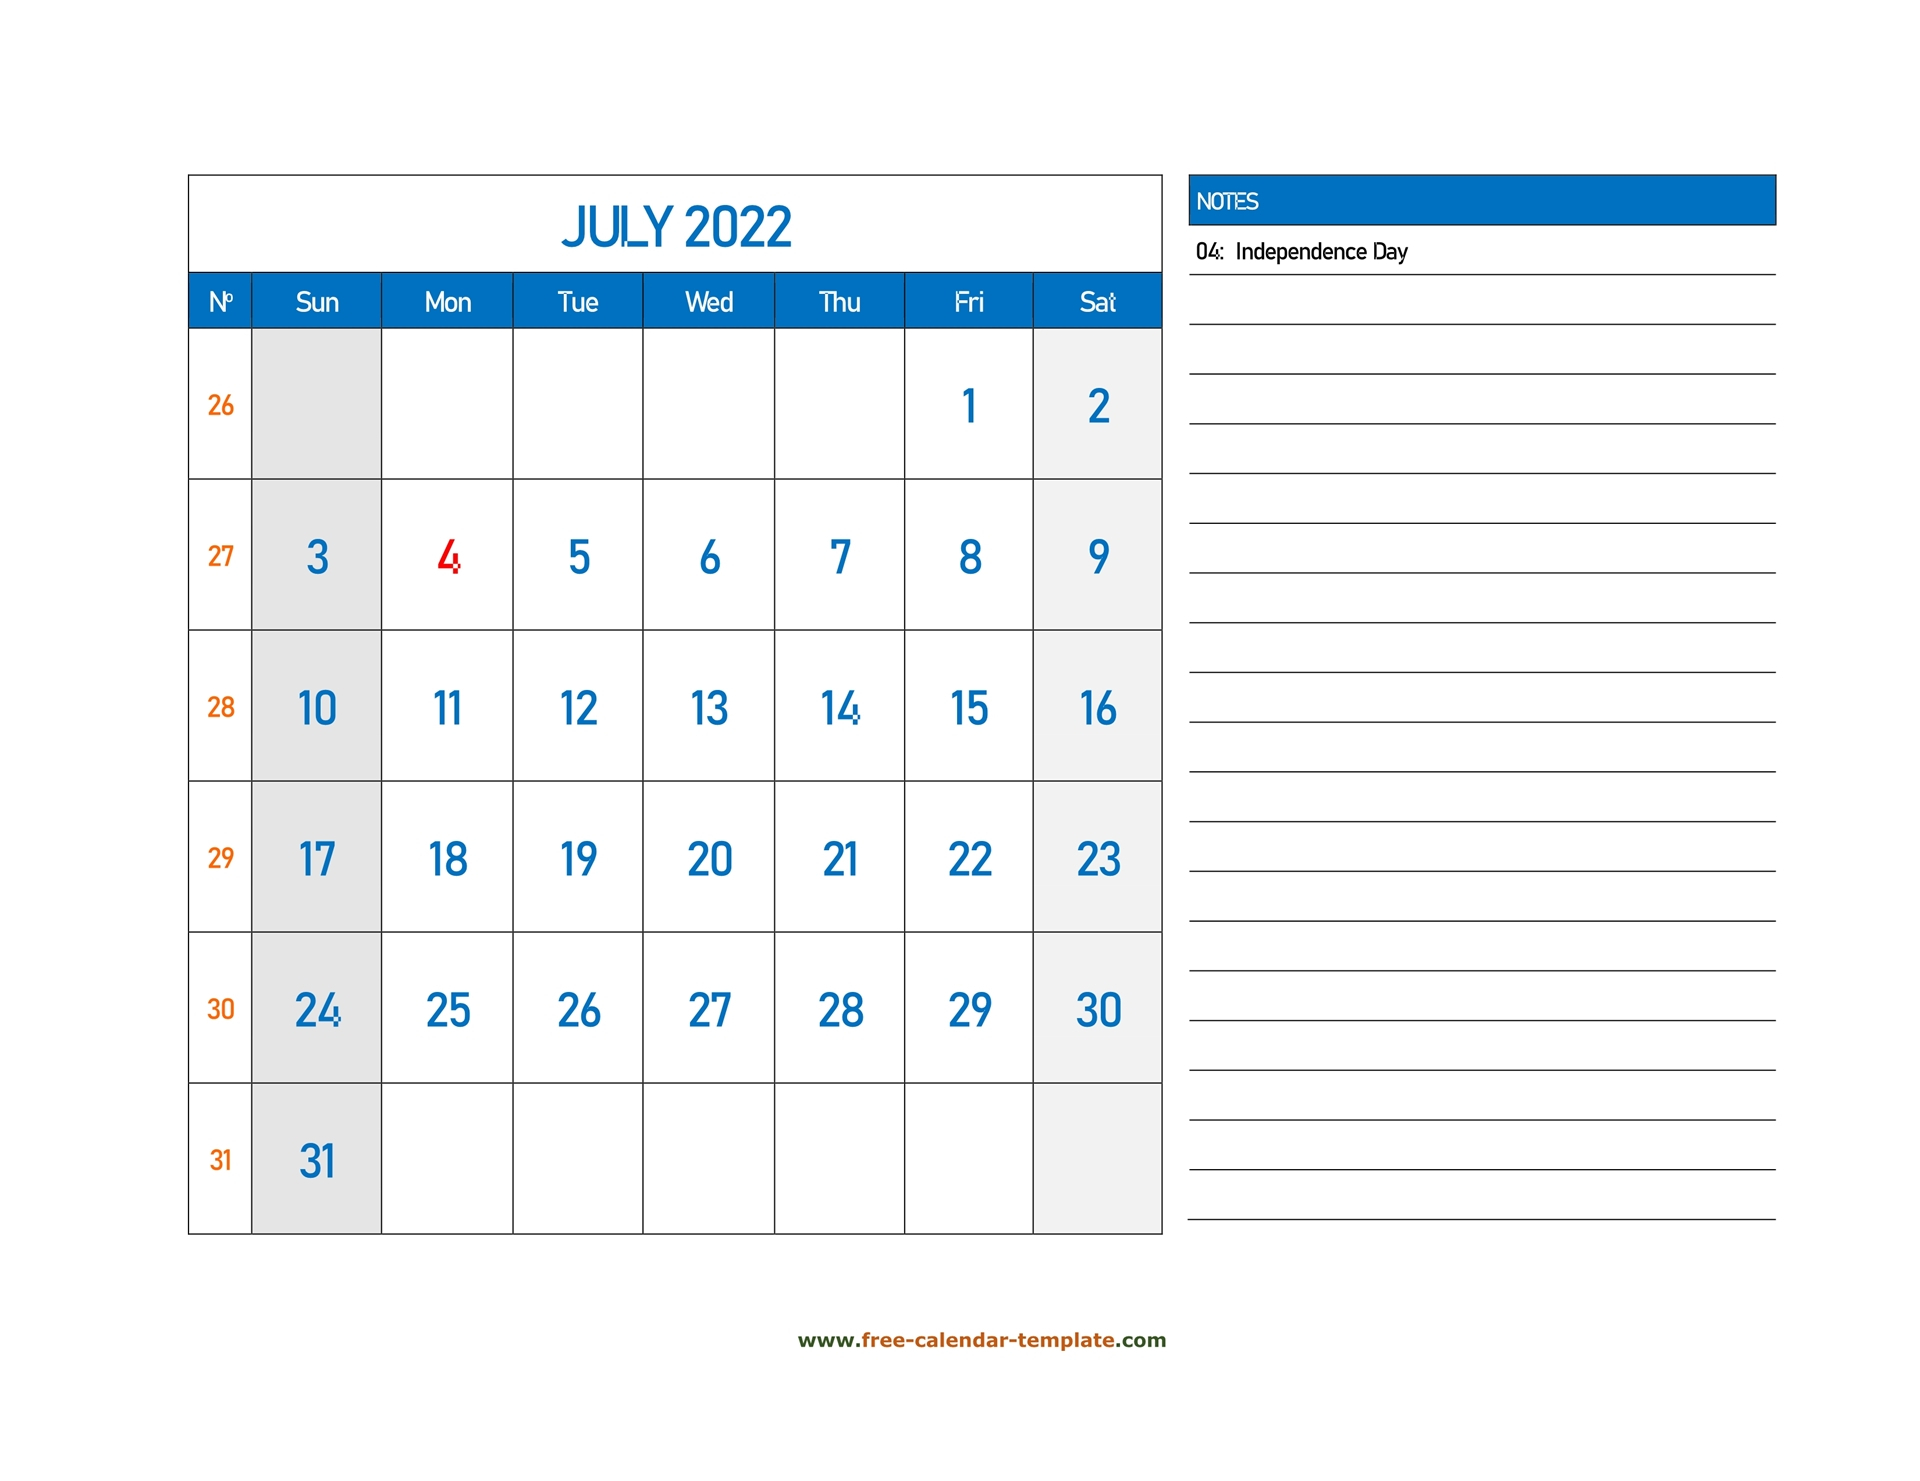 July Calendar 2022 Grid Lines For Holidays And Notes